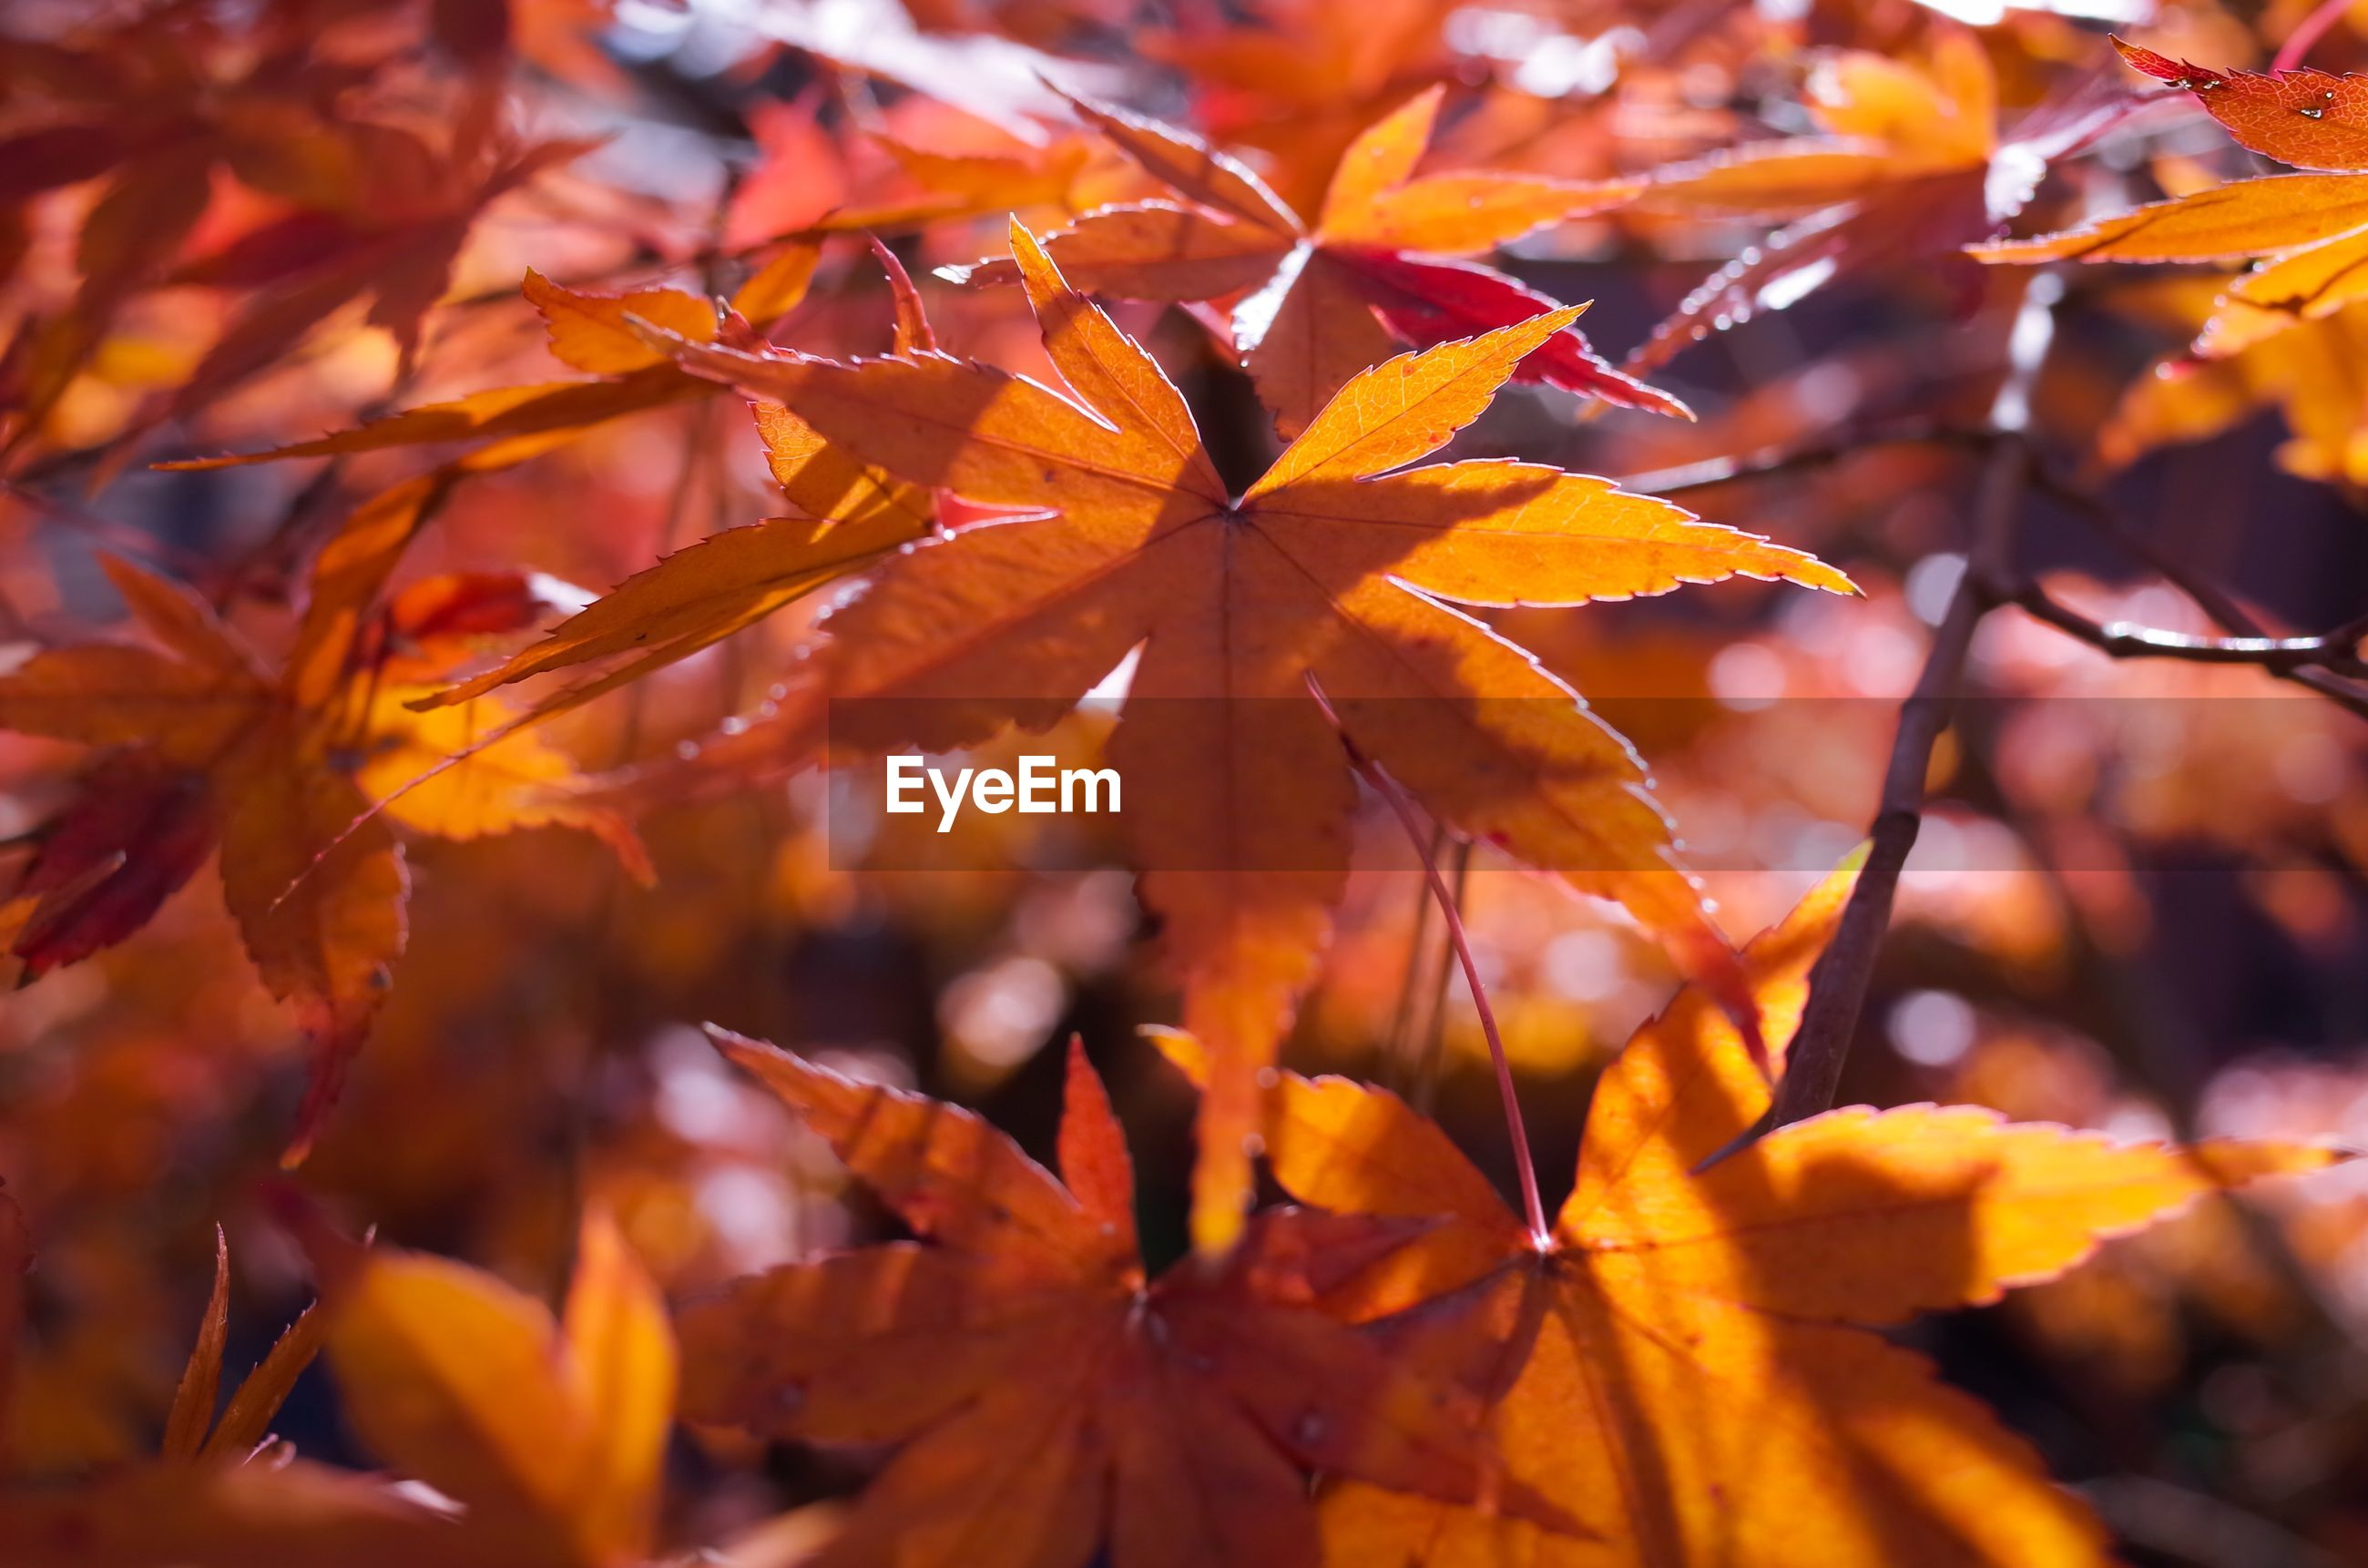 autumn, change, leaf, season, leaves, branch, tree, orange color, focus on foreground, nature, maple leaf, close-up, leaf vein, beauty in nature, growth, tranquility, yellow, full frame, day, outdoors